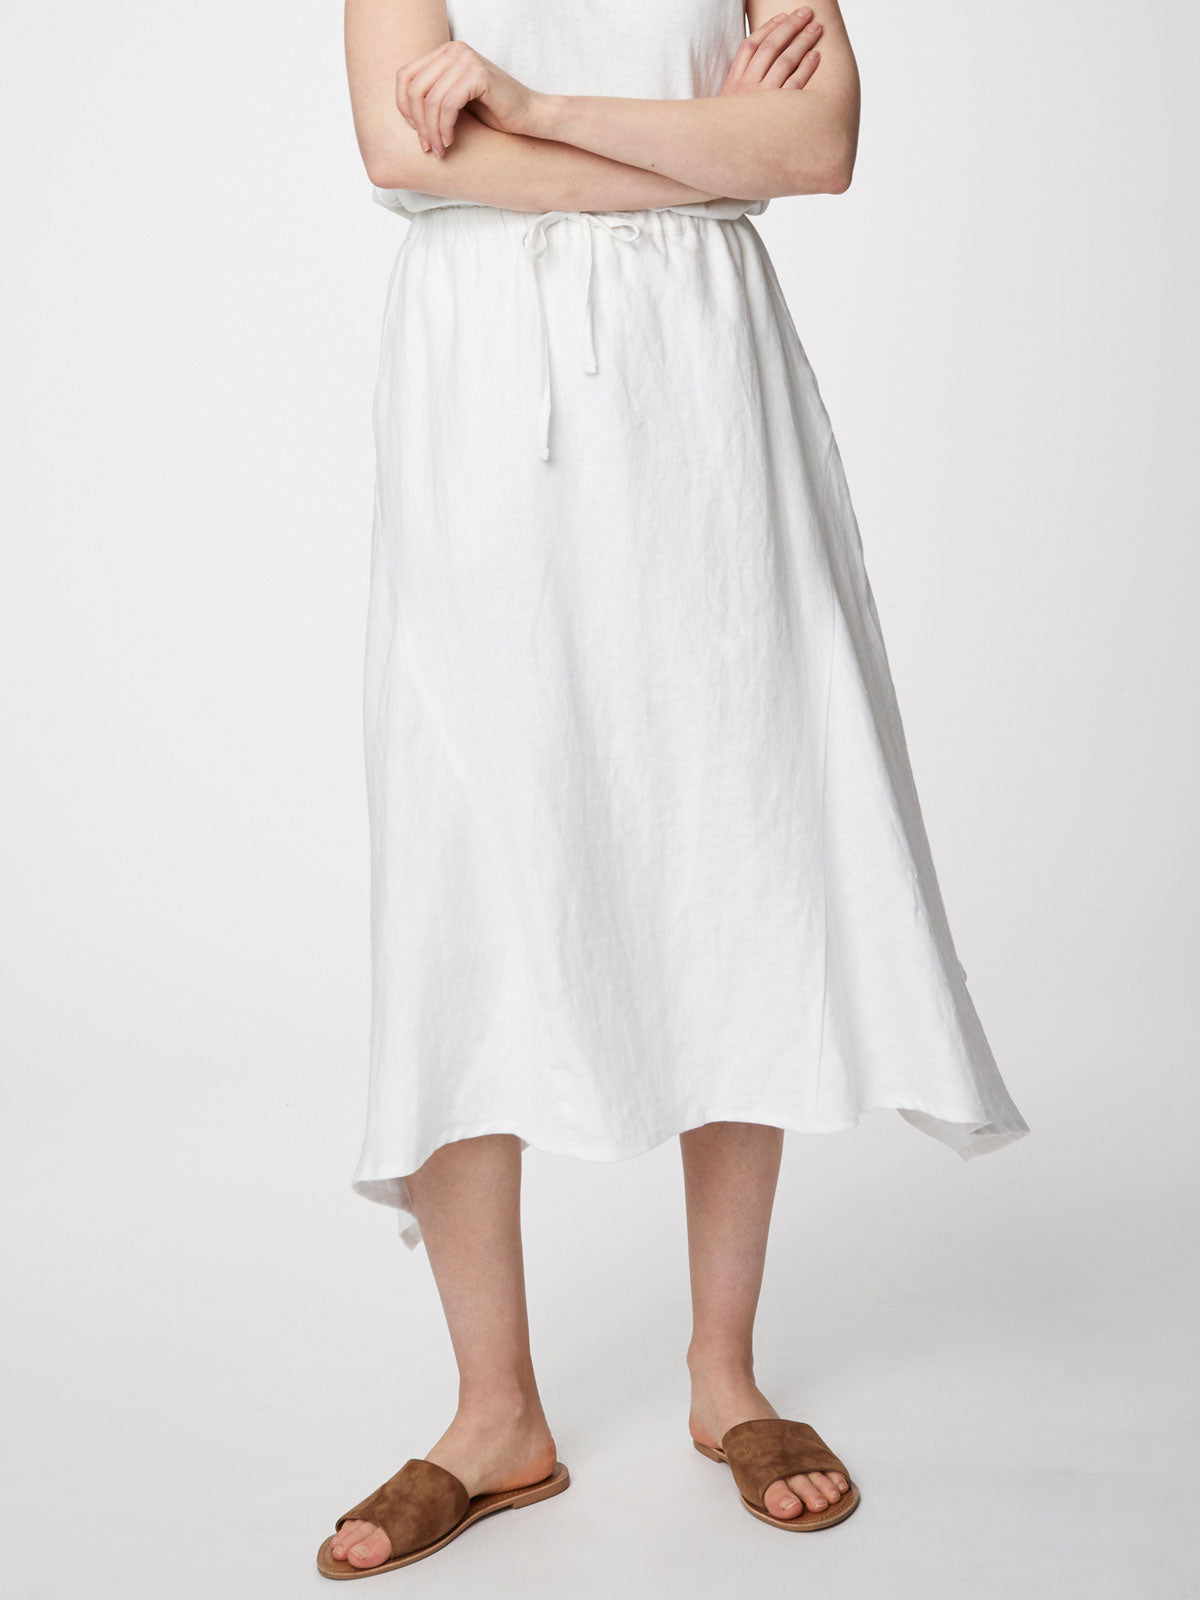 Thought Ellena Skirt for Ladies in White